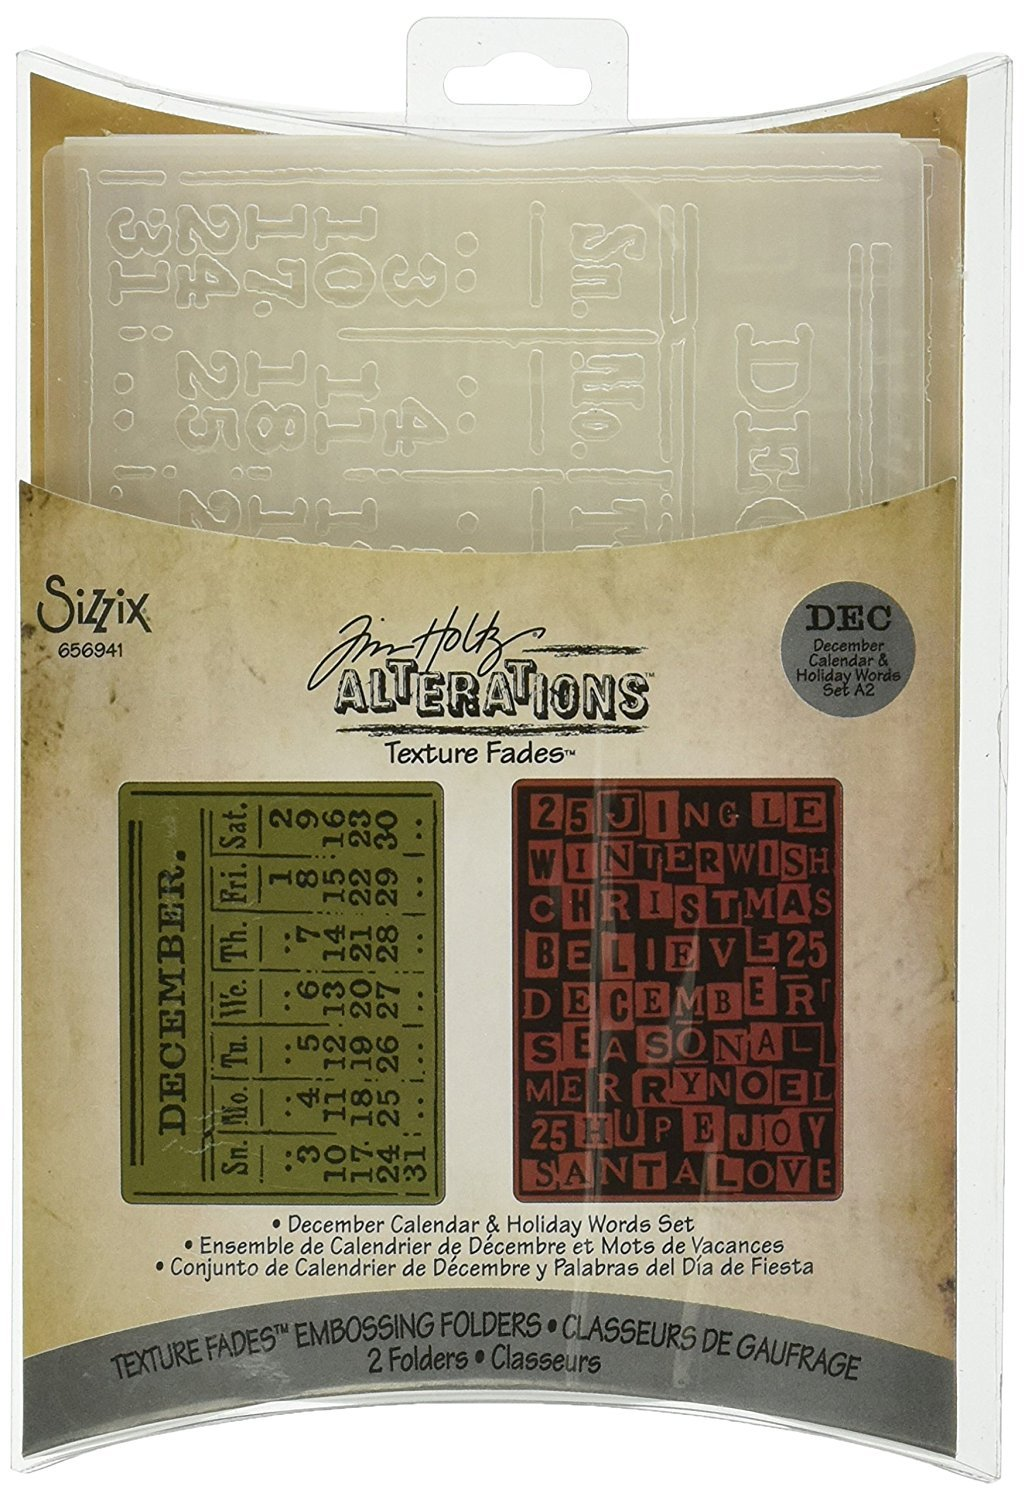 Sizzix Tim Holtz Texture Fades Alterations Collection Embossing Folders December Calendar and Holiday Words (8 Pack)